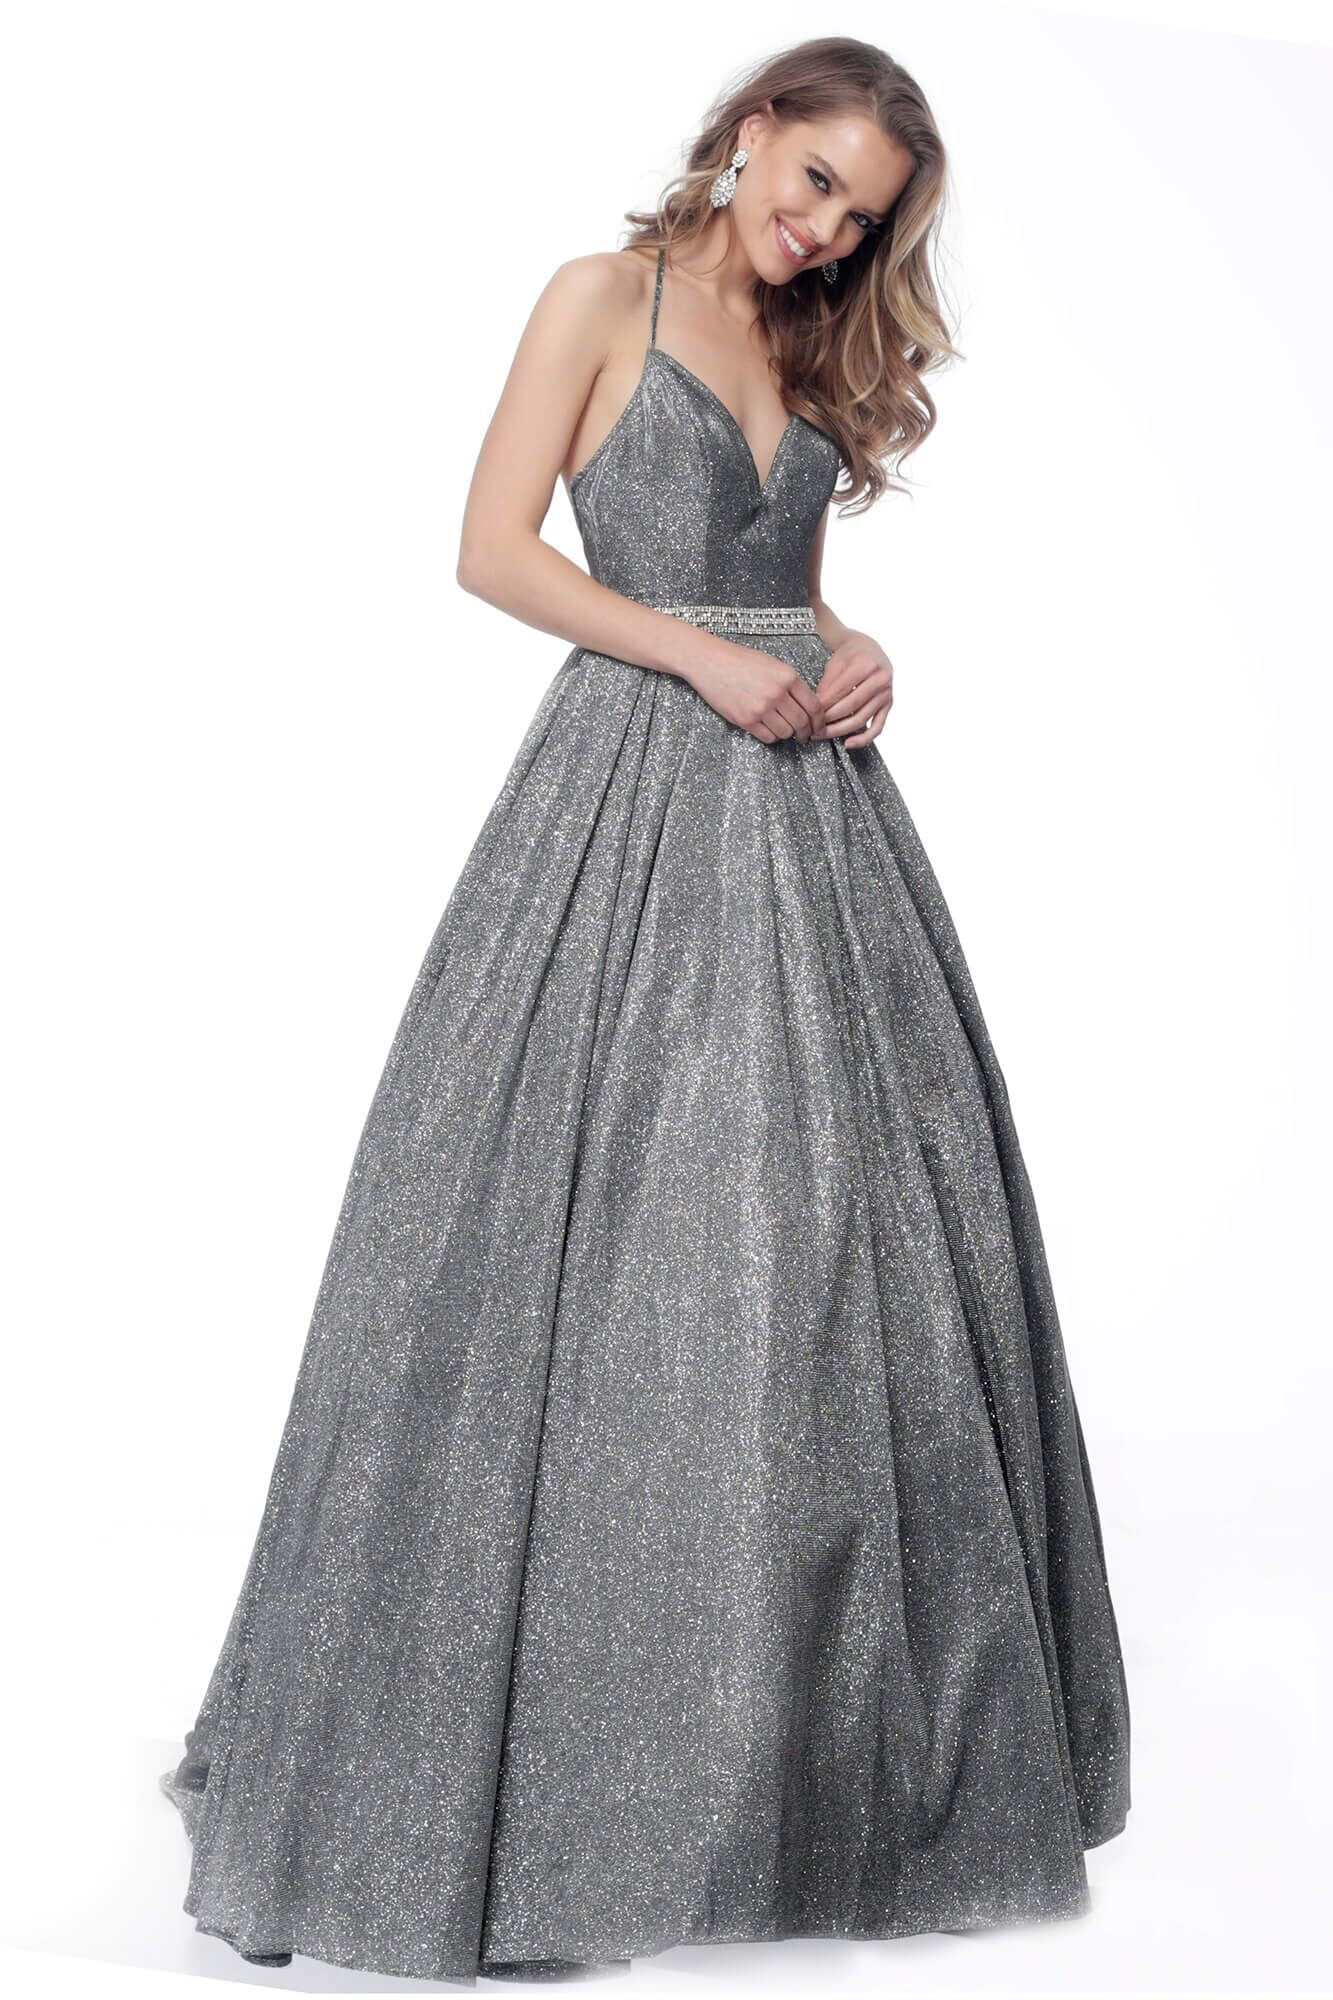 Jovani - 66038 Sweetheart Glittered Ballgown In Gray and Silver